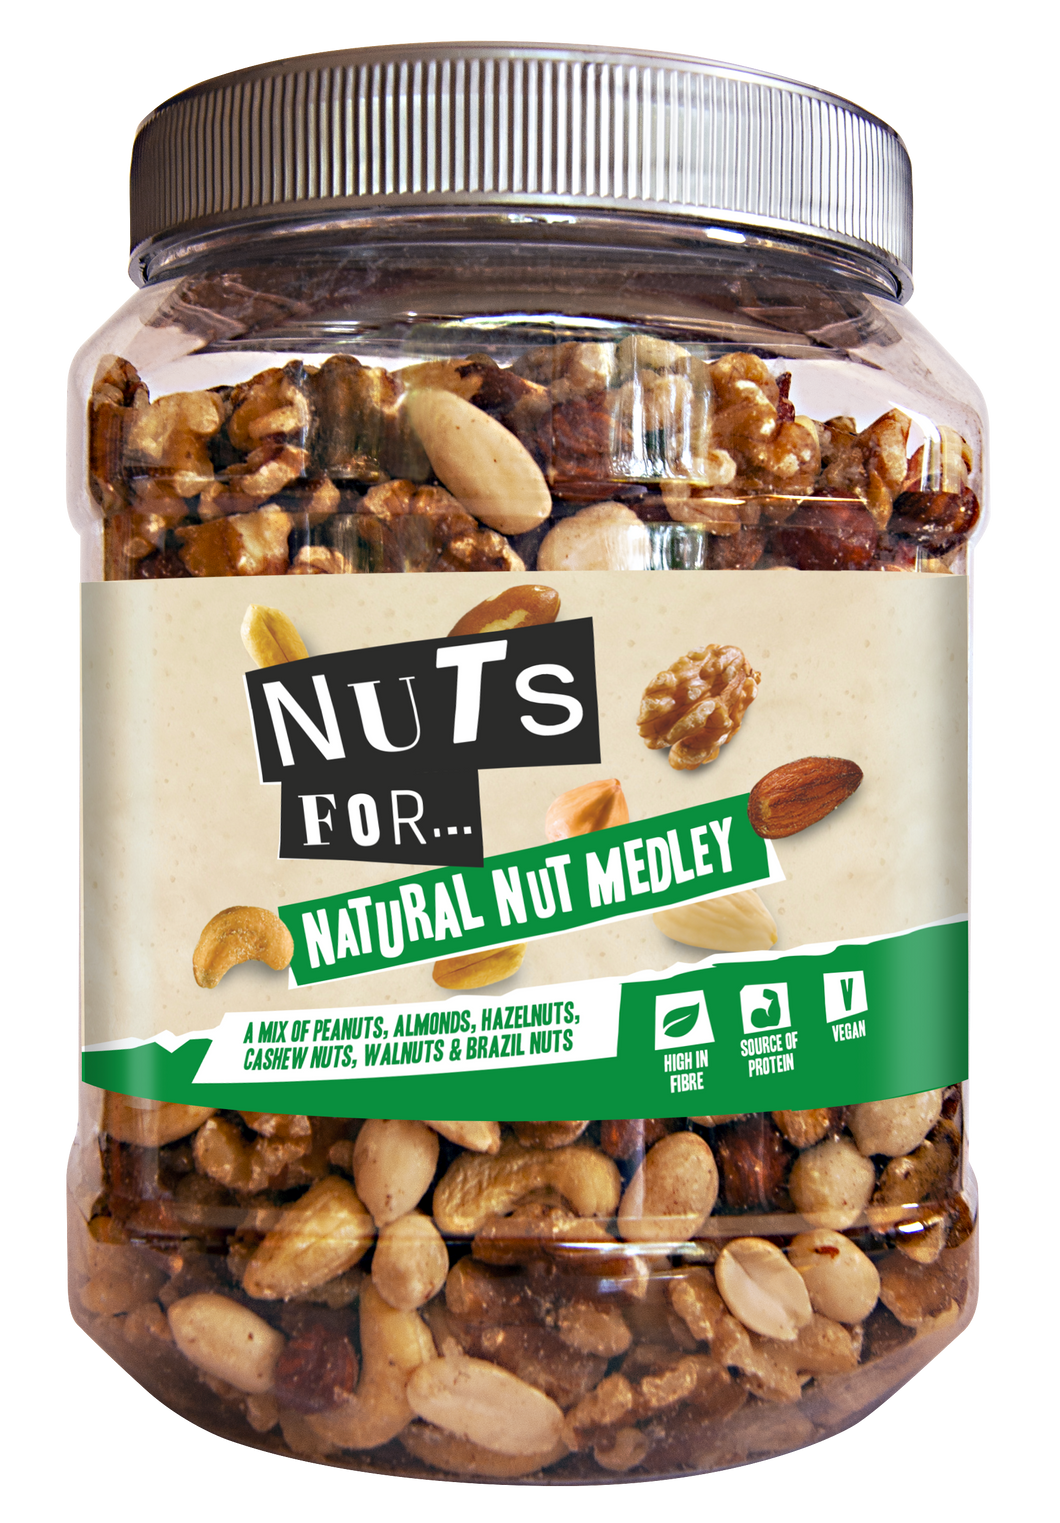 Nuts For Natural Nut Medley, a mix of peanuts, almonds, hazelnuts, cashew nuts, walnuts and brazil nuts.